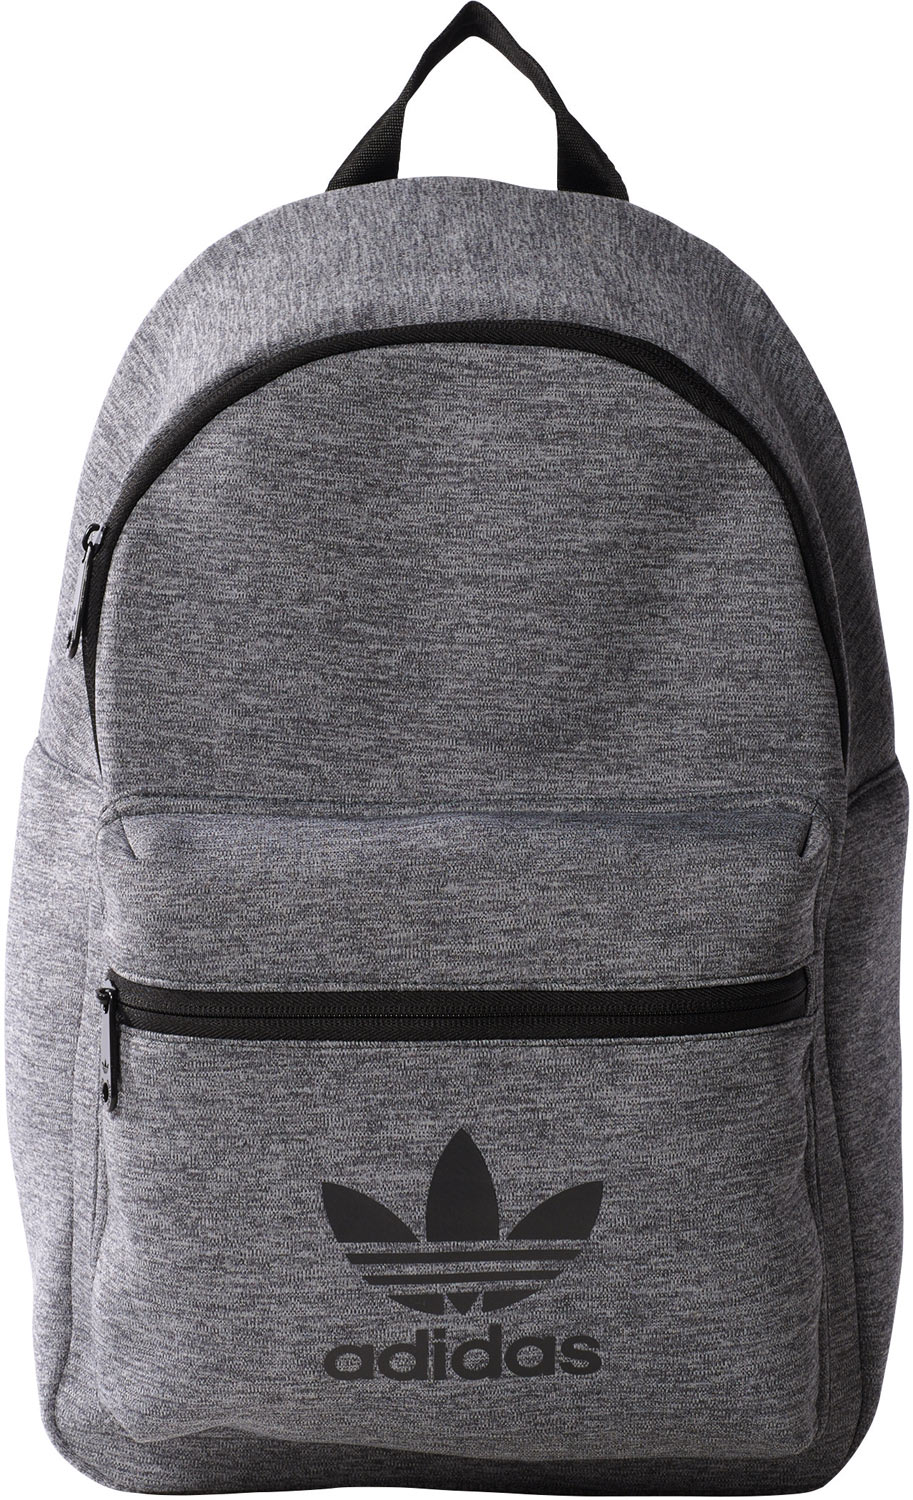 Adidas Classic Jersey Backpack Grey Black